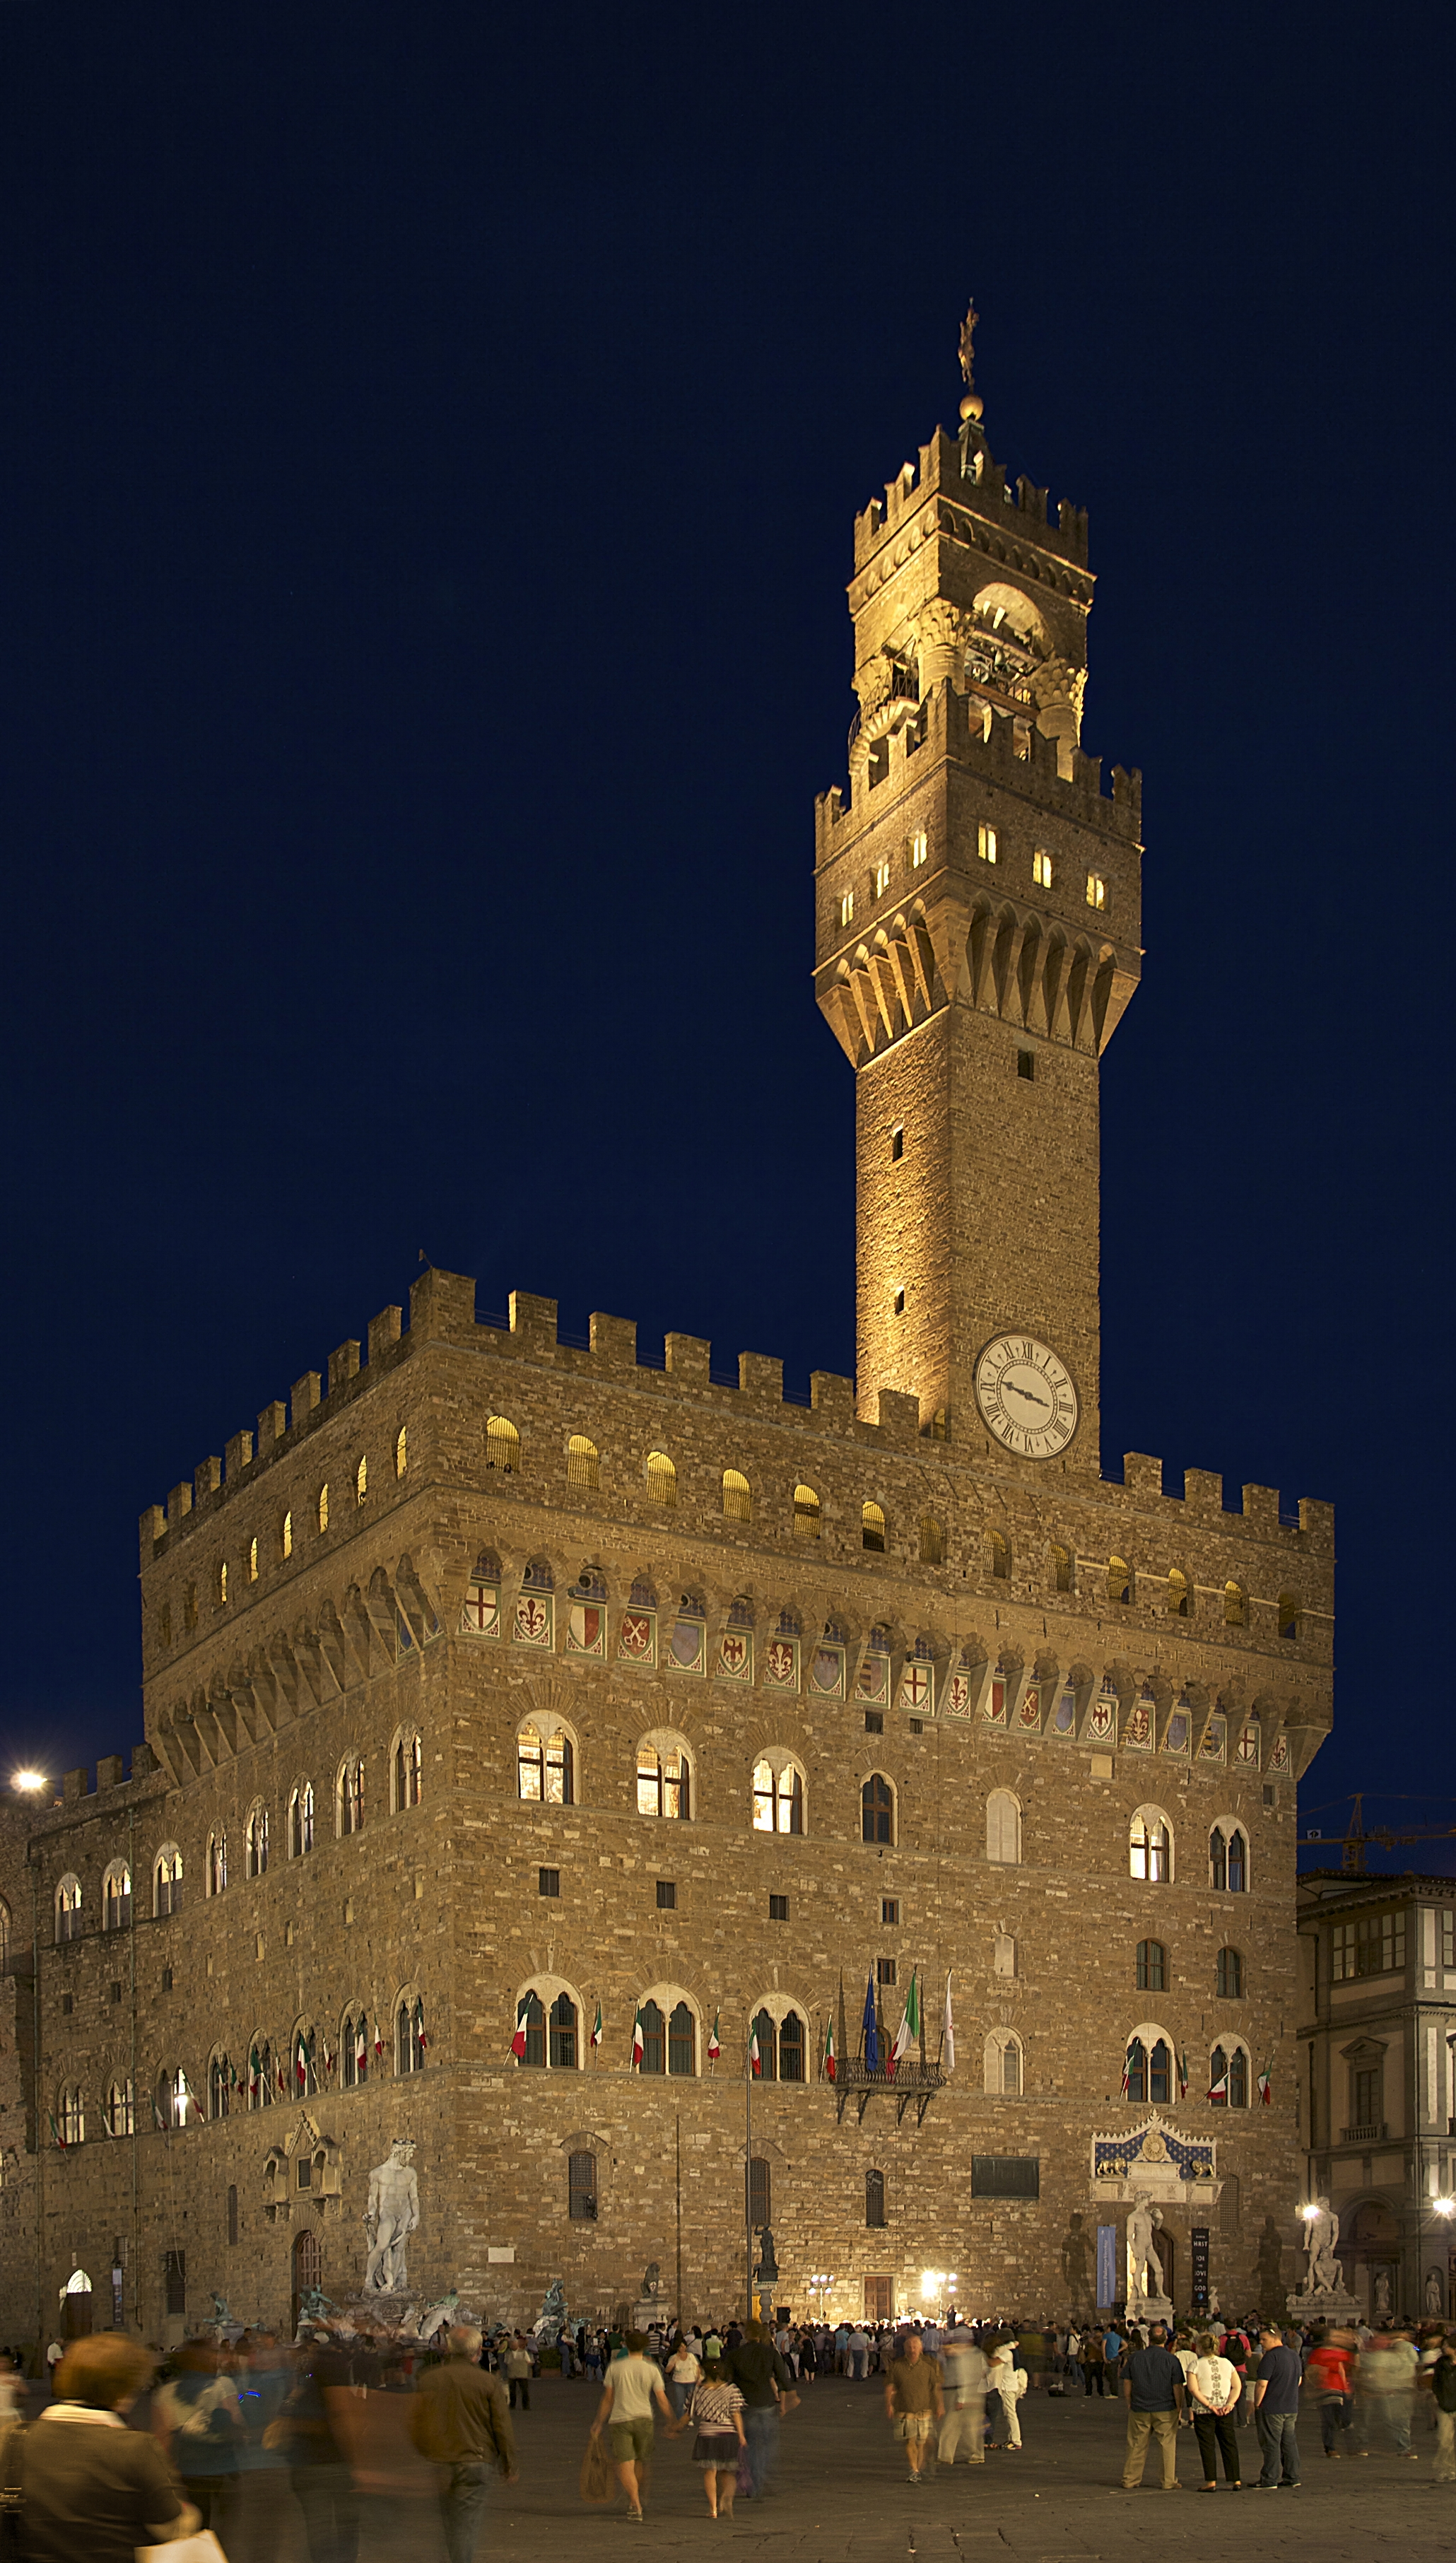 Palazzo Vecchio - A Classic Museum in Florence